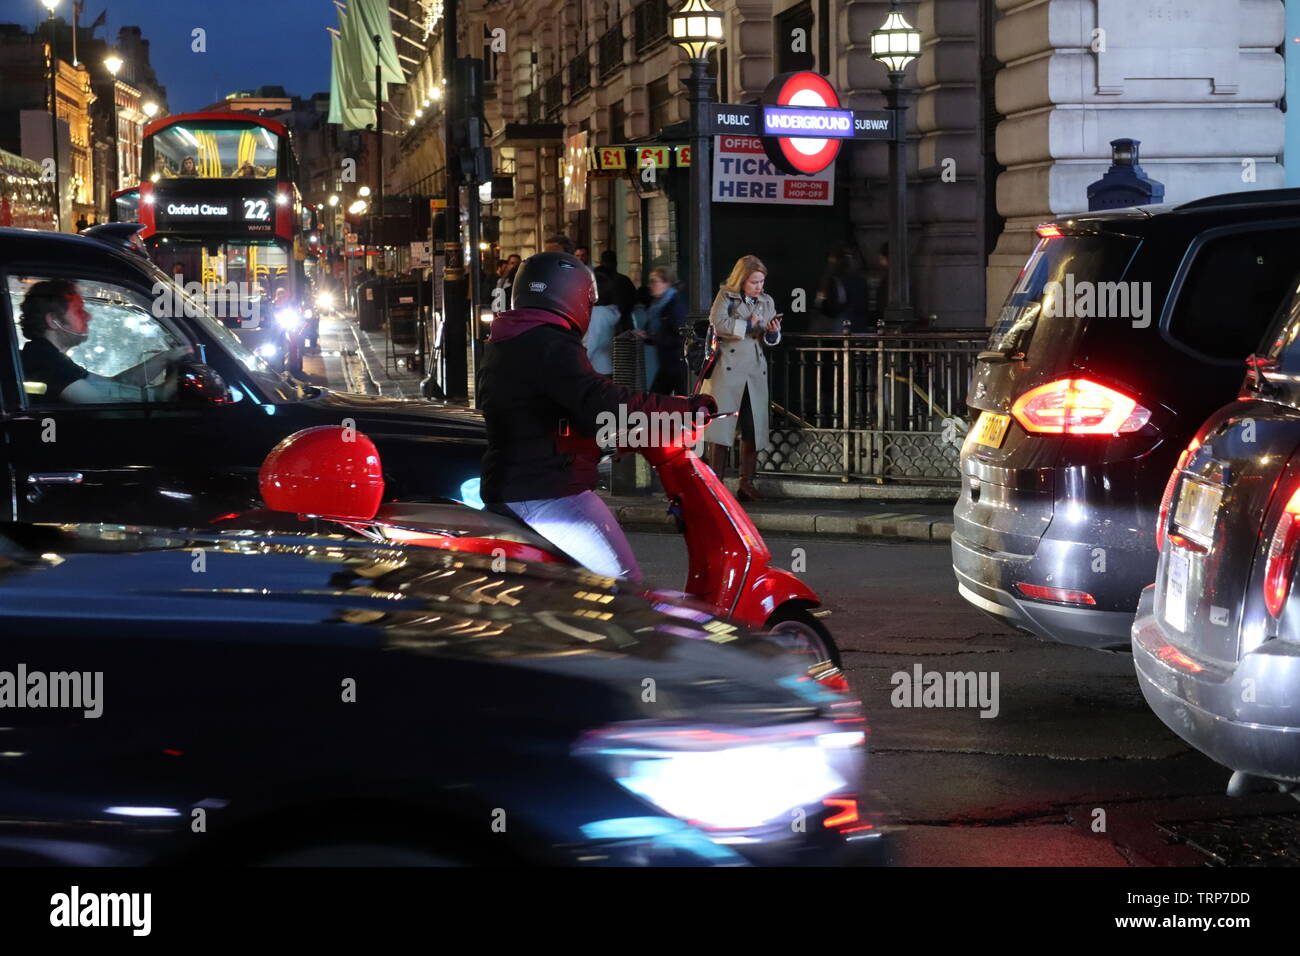 scooter-rider-weaves-through-taffic-at-night-piccadilly-london-england-uk-TRP7DD.jpg